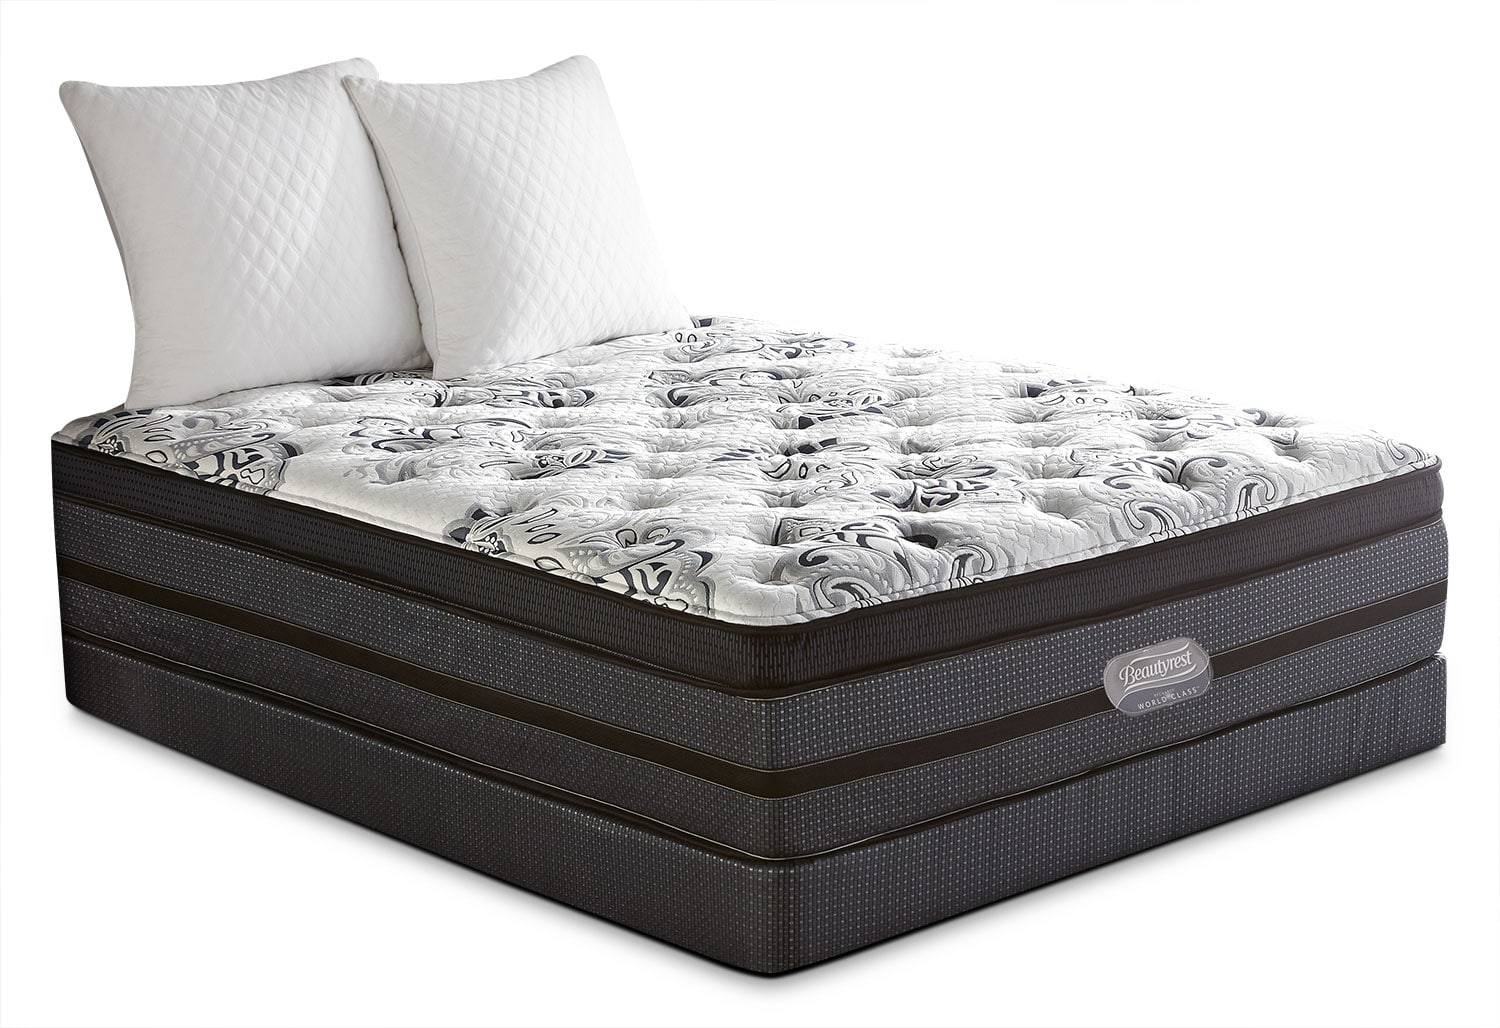 Mattresses and Bedding - Beautyrest® World Class Paxson Comfort-Top Firm Low-Profile Split Queen Mattress Set